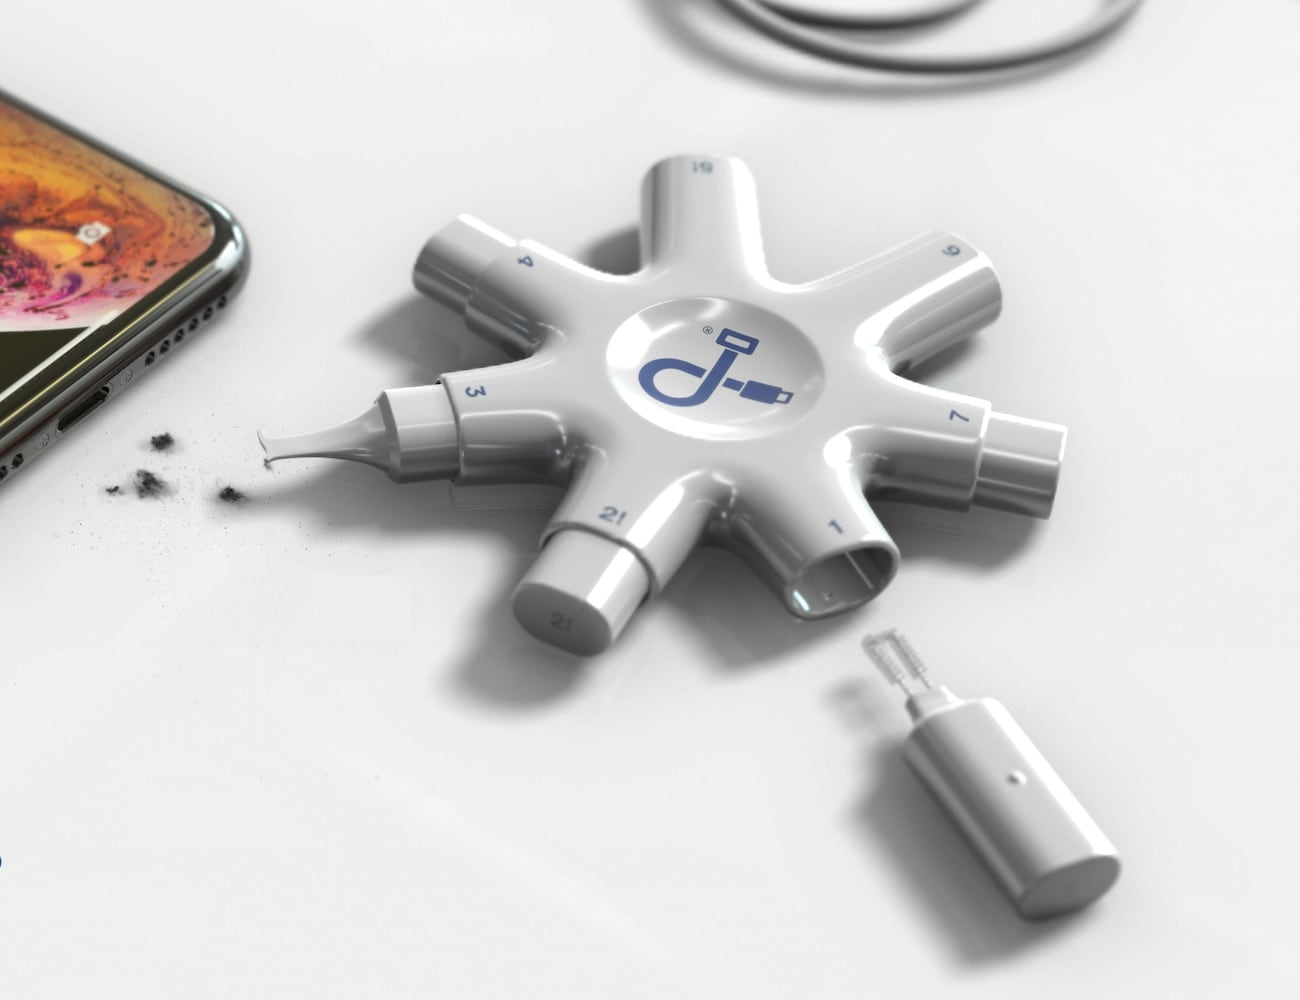 PurePort Cleaning Multi-Tool for iPhone and iPad